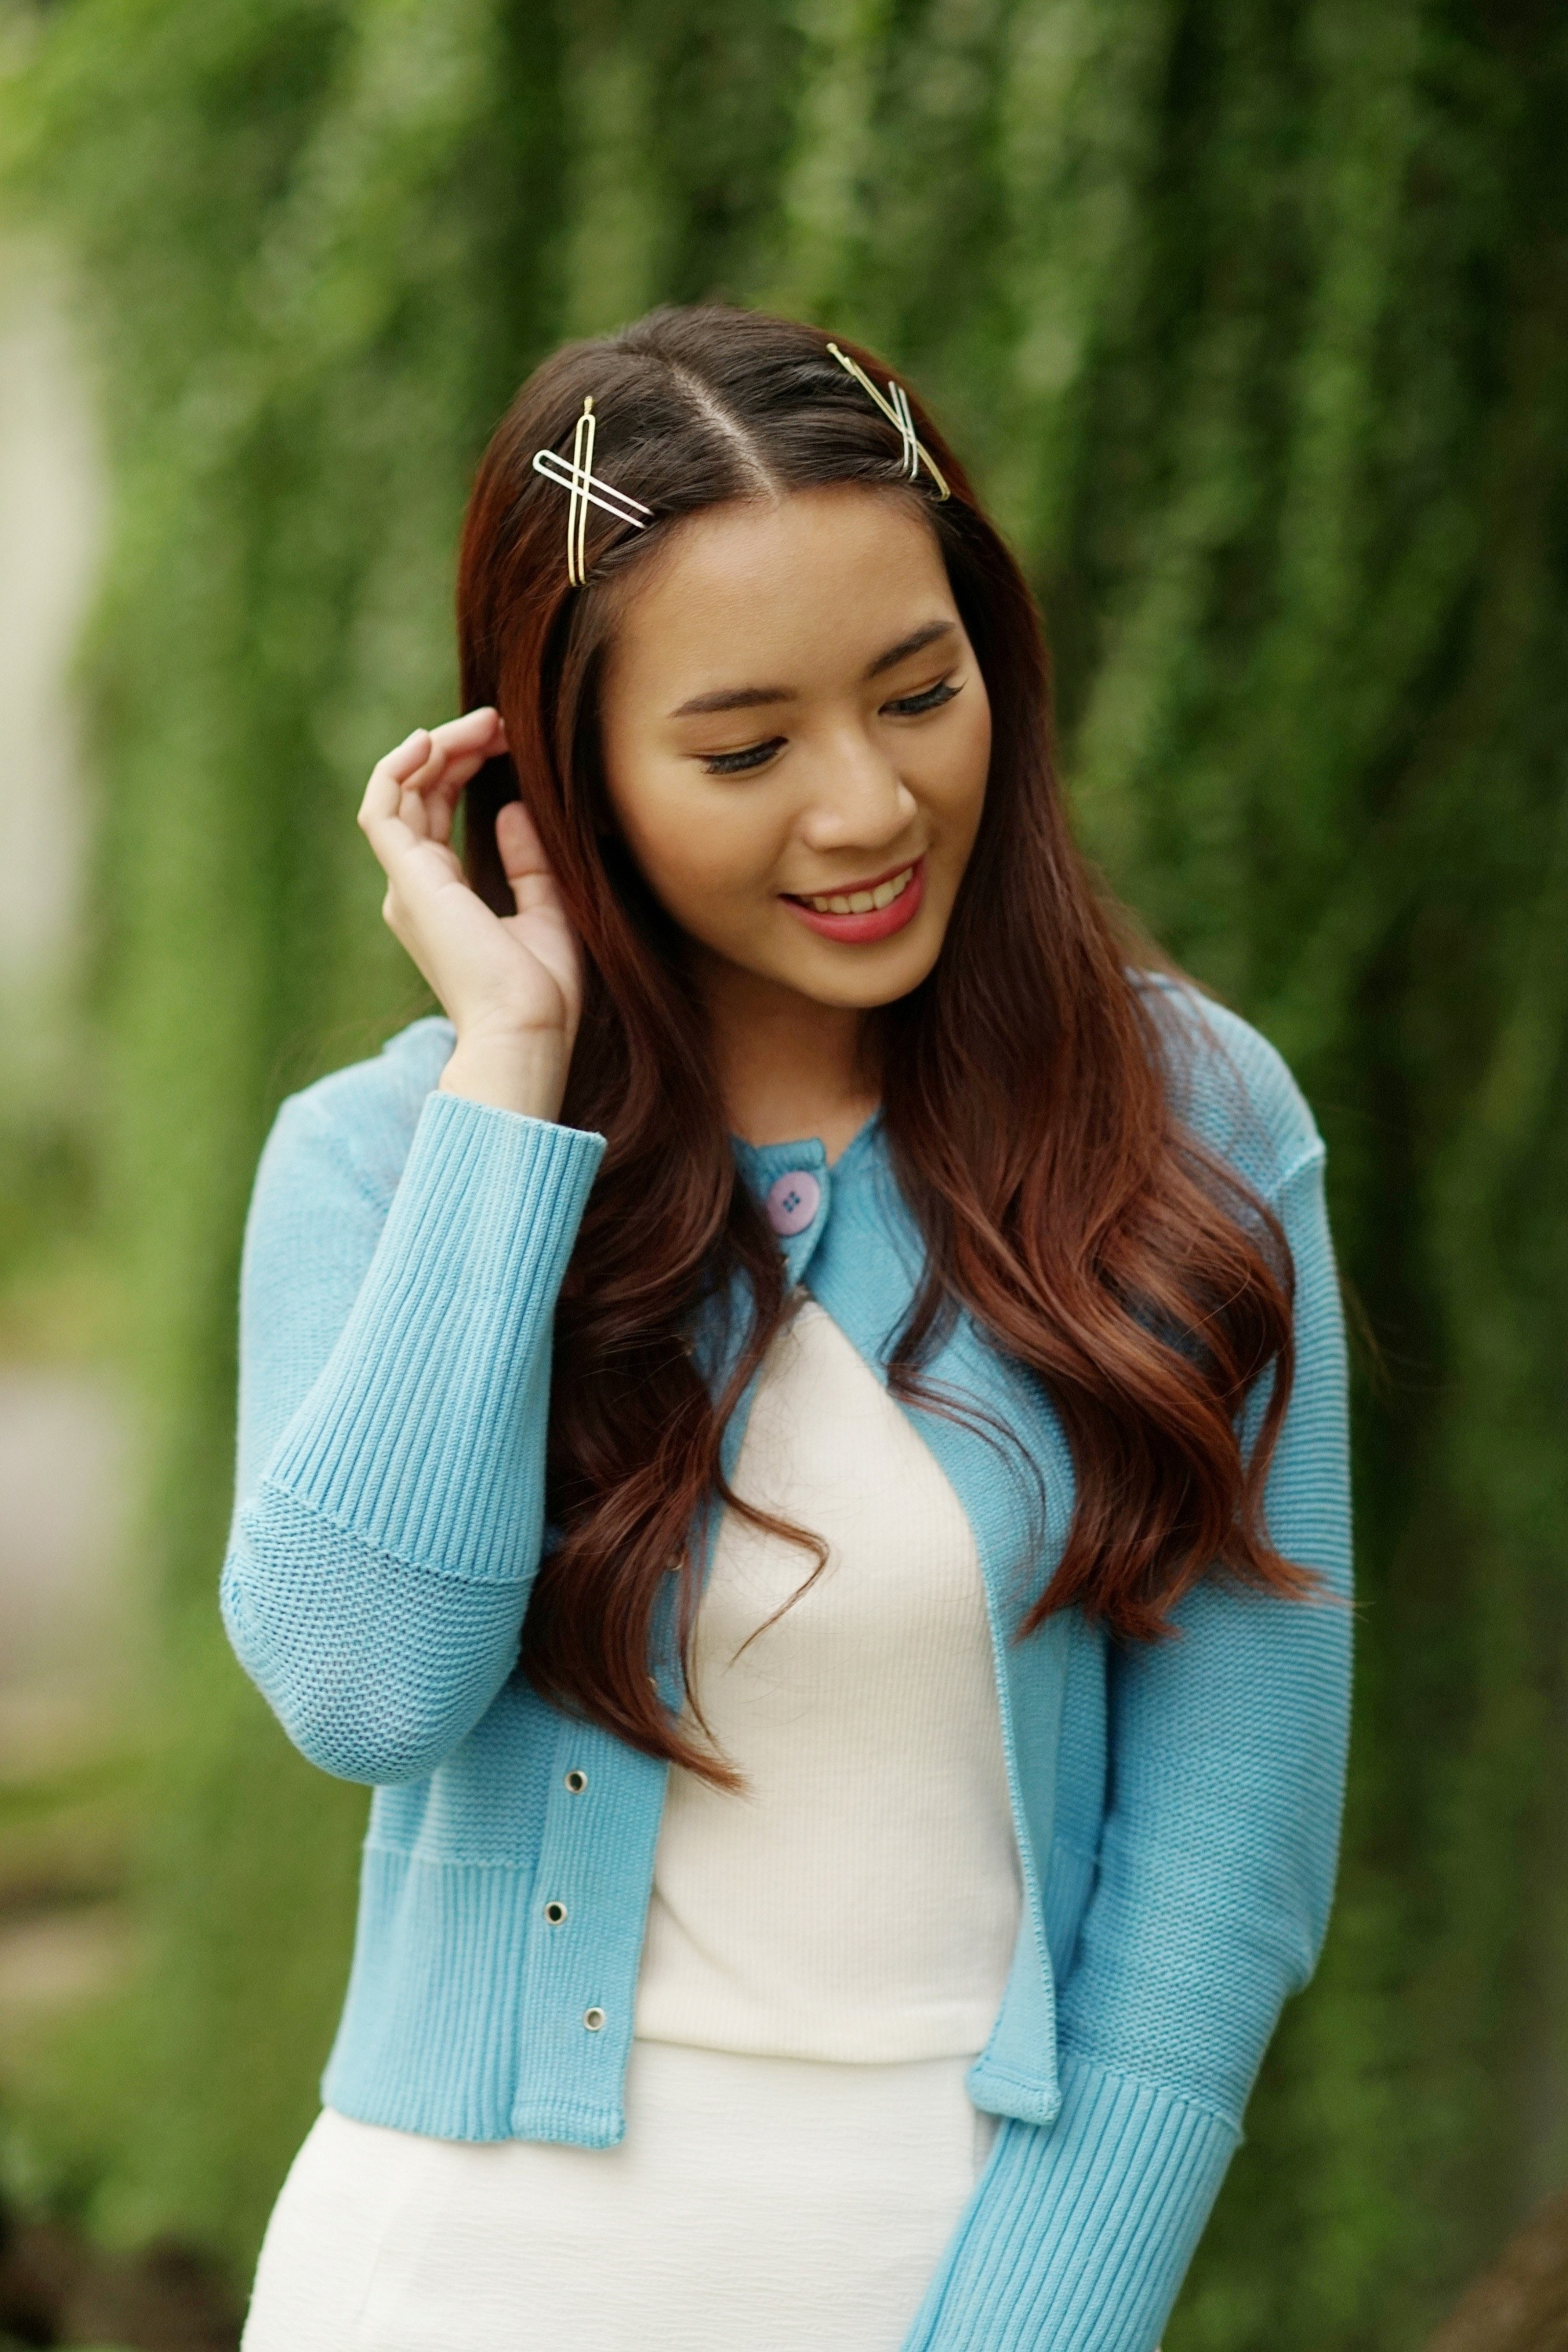 Blow dry your hair: Asian woman with long dark hair with hair clips wearing a dress outdoors